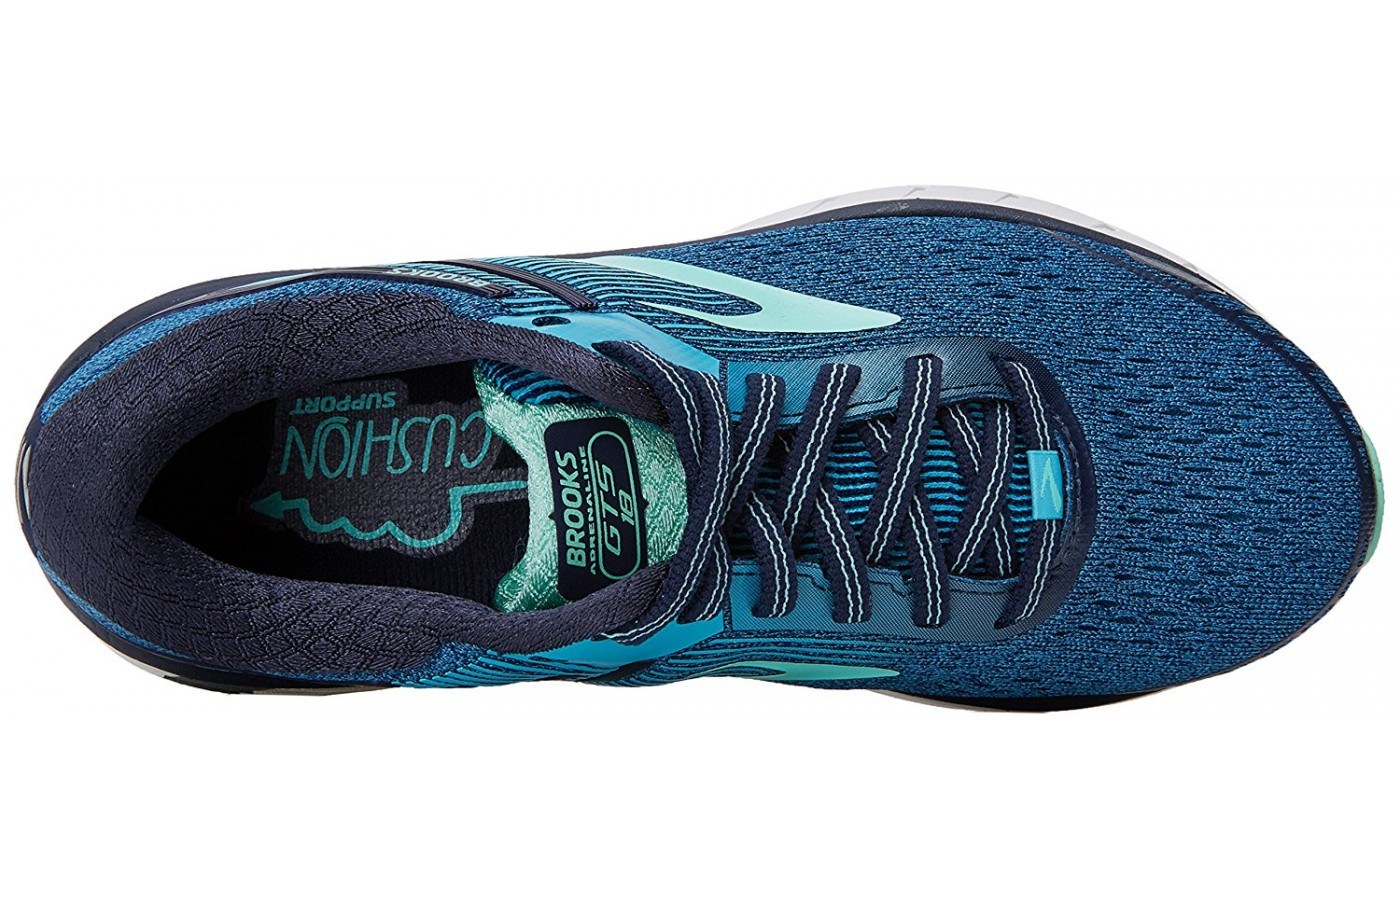 The top part of the Brooks Adrenaline GTS 18 shown